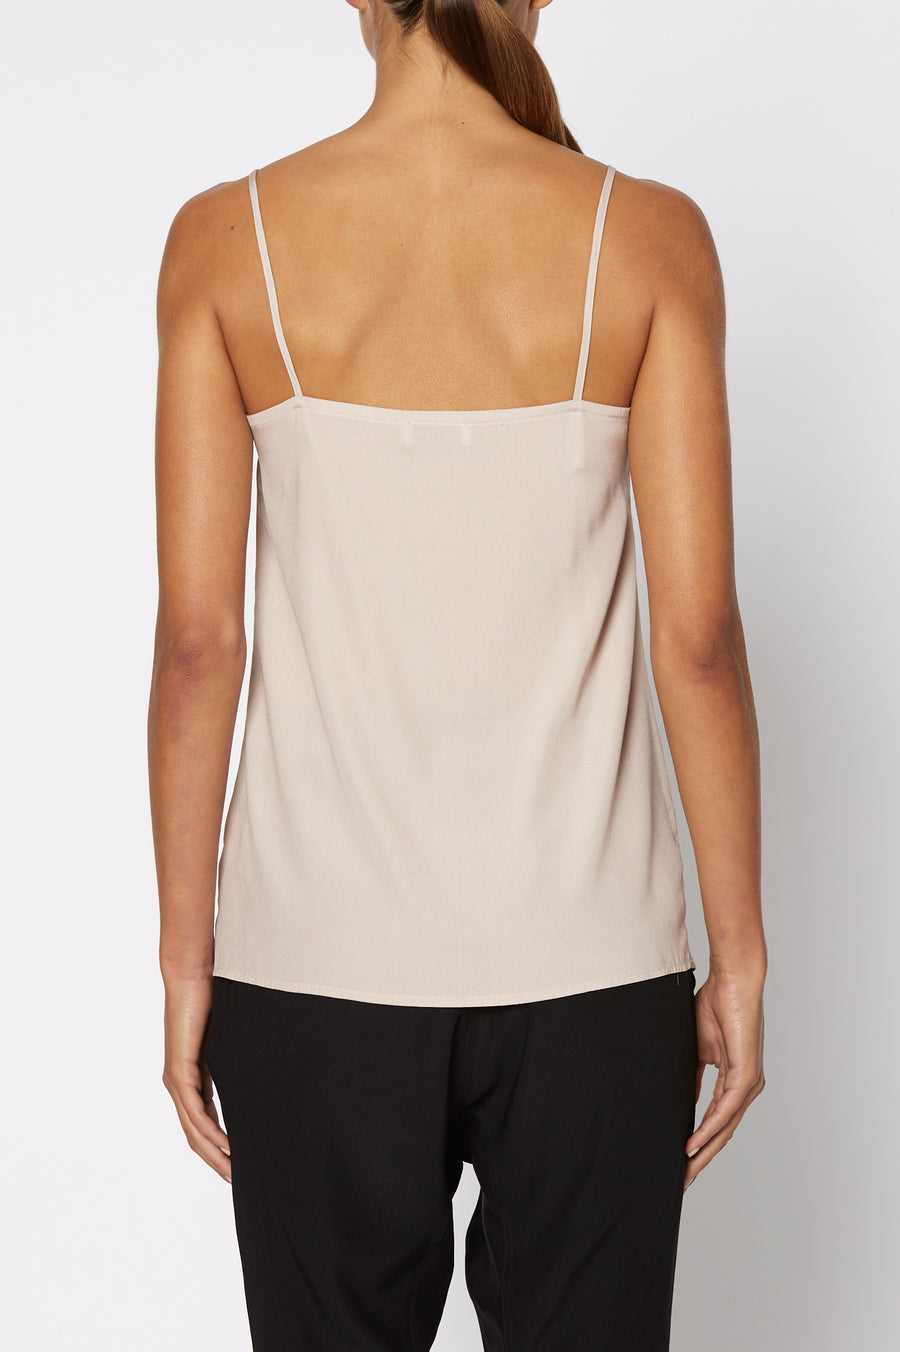 SHOESTRING CAMISOLE, PALE PINK color